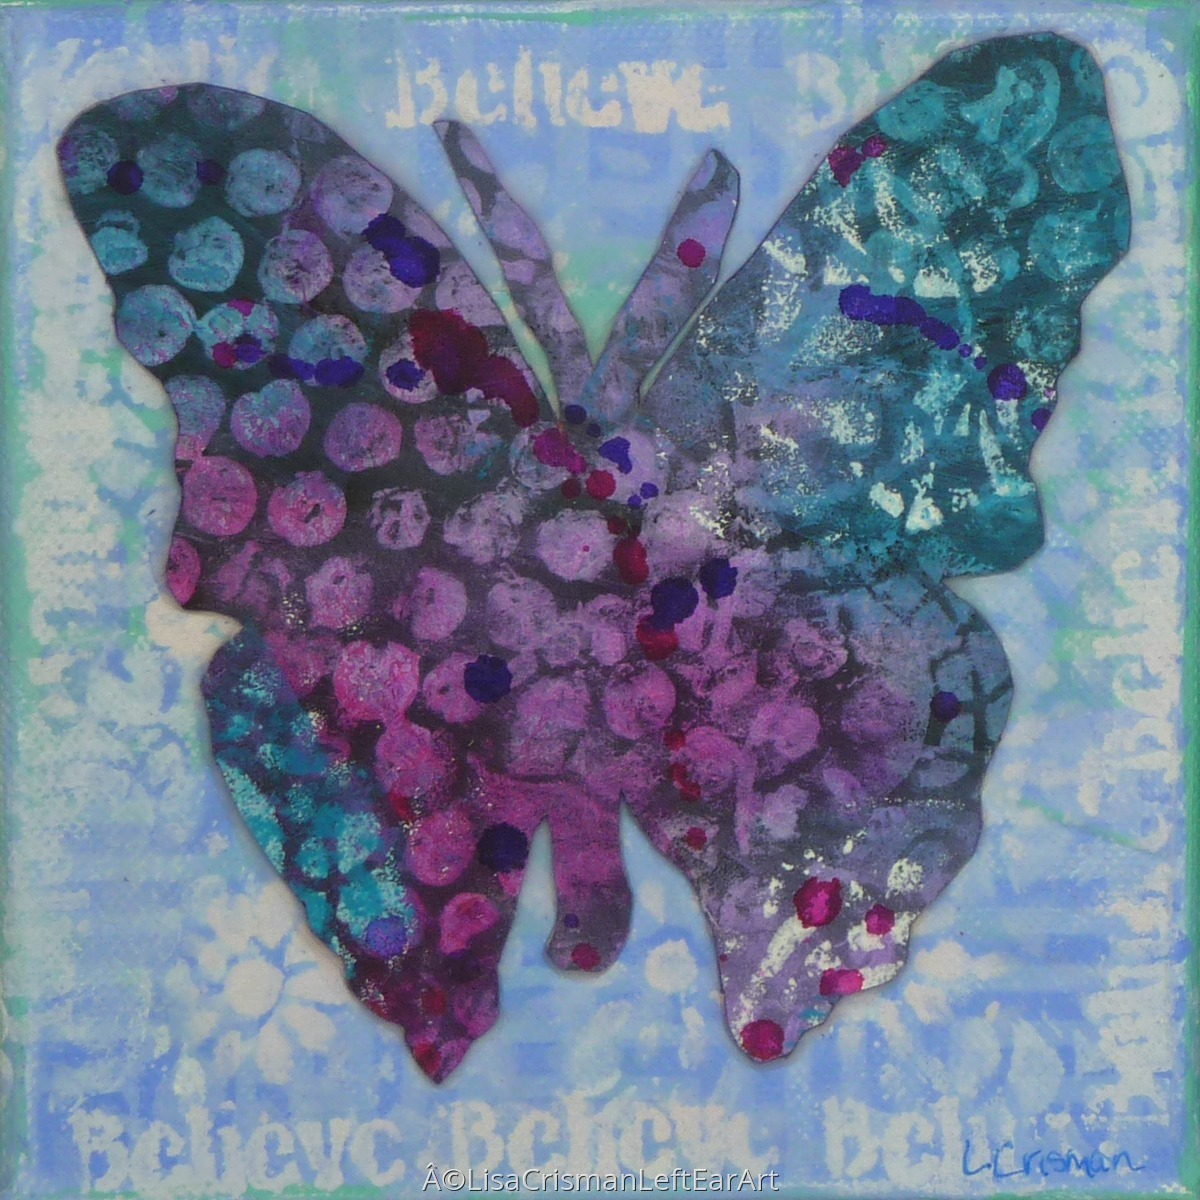 Believe Butterfly (large view)